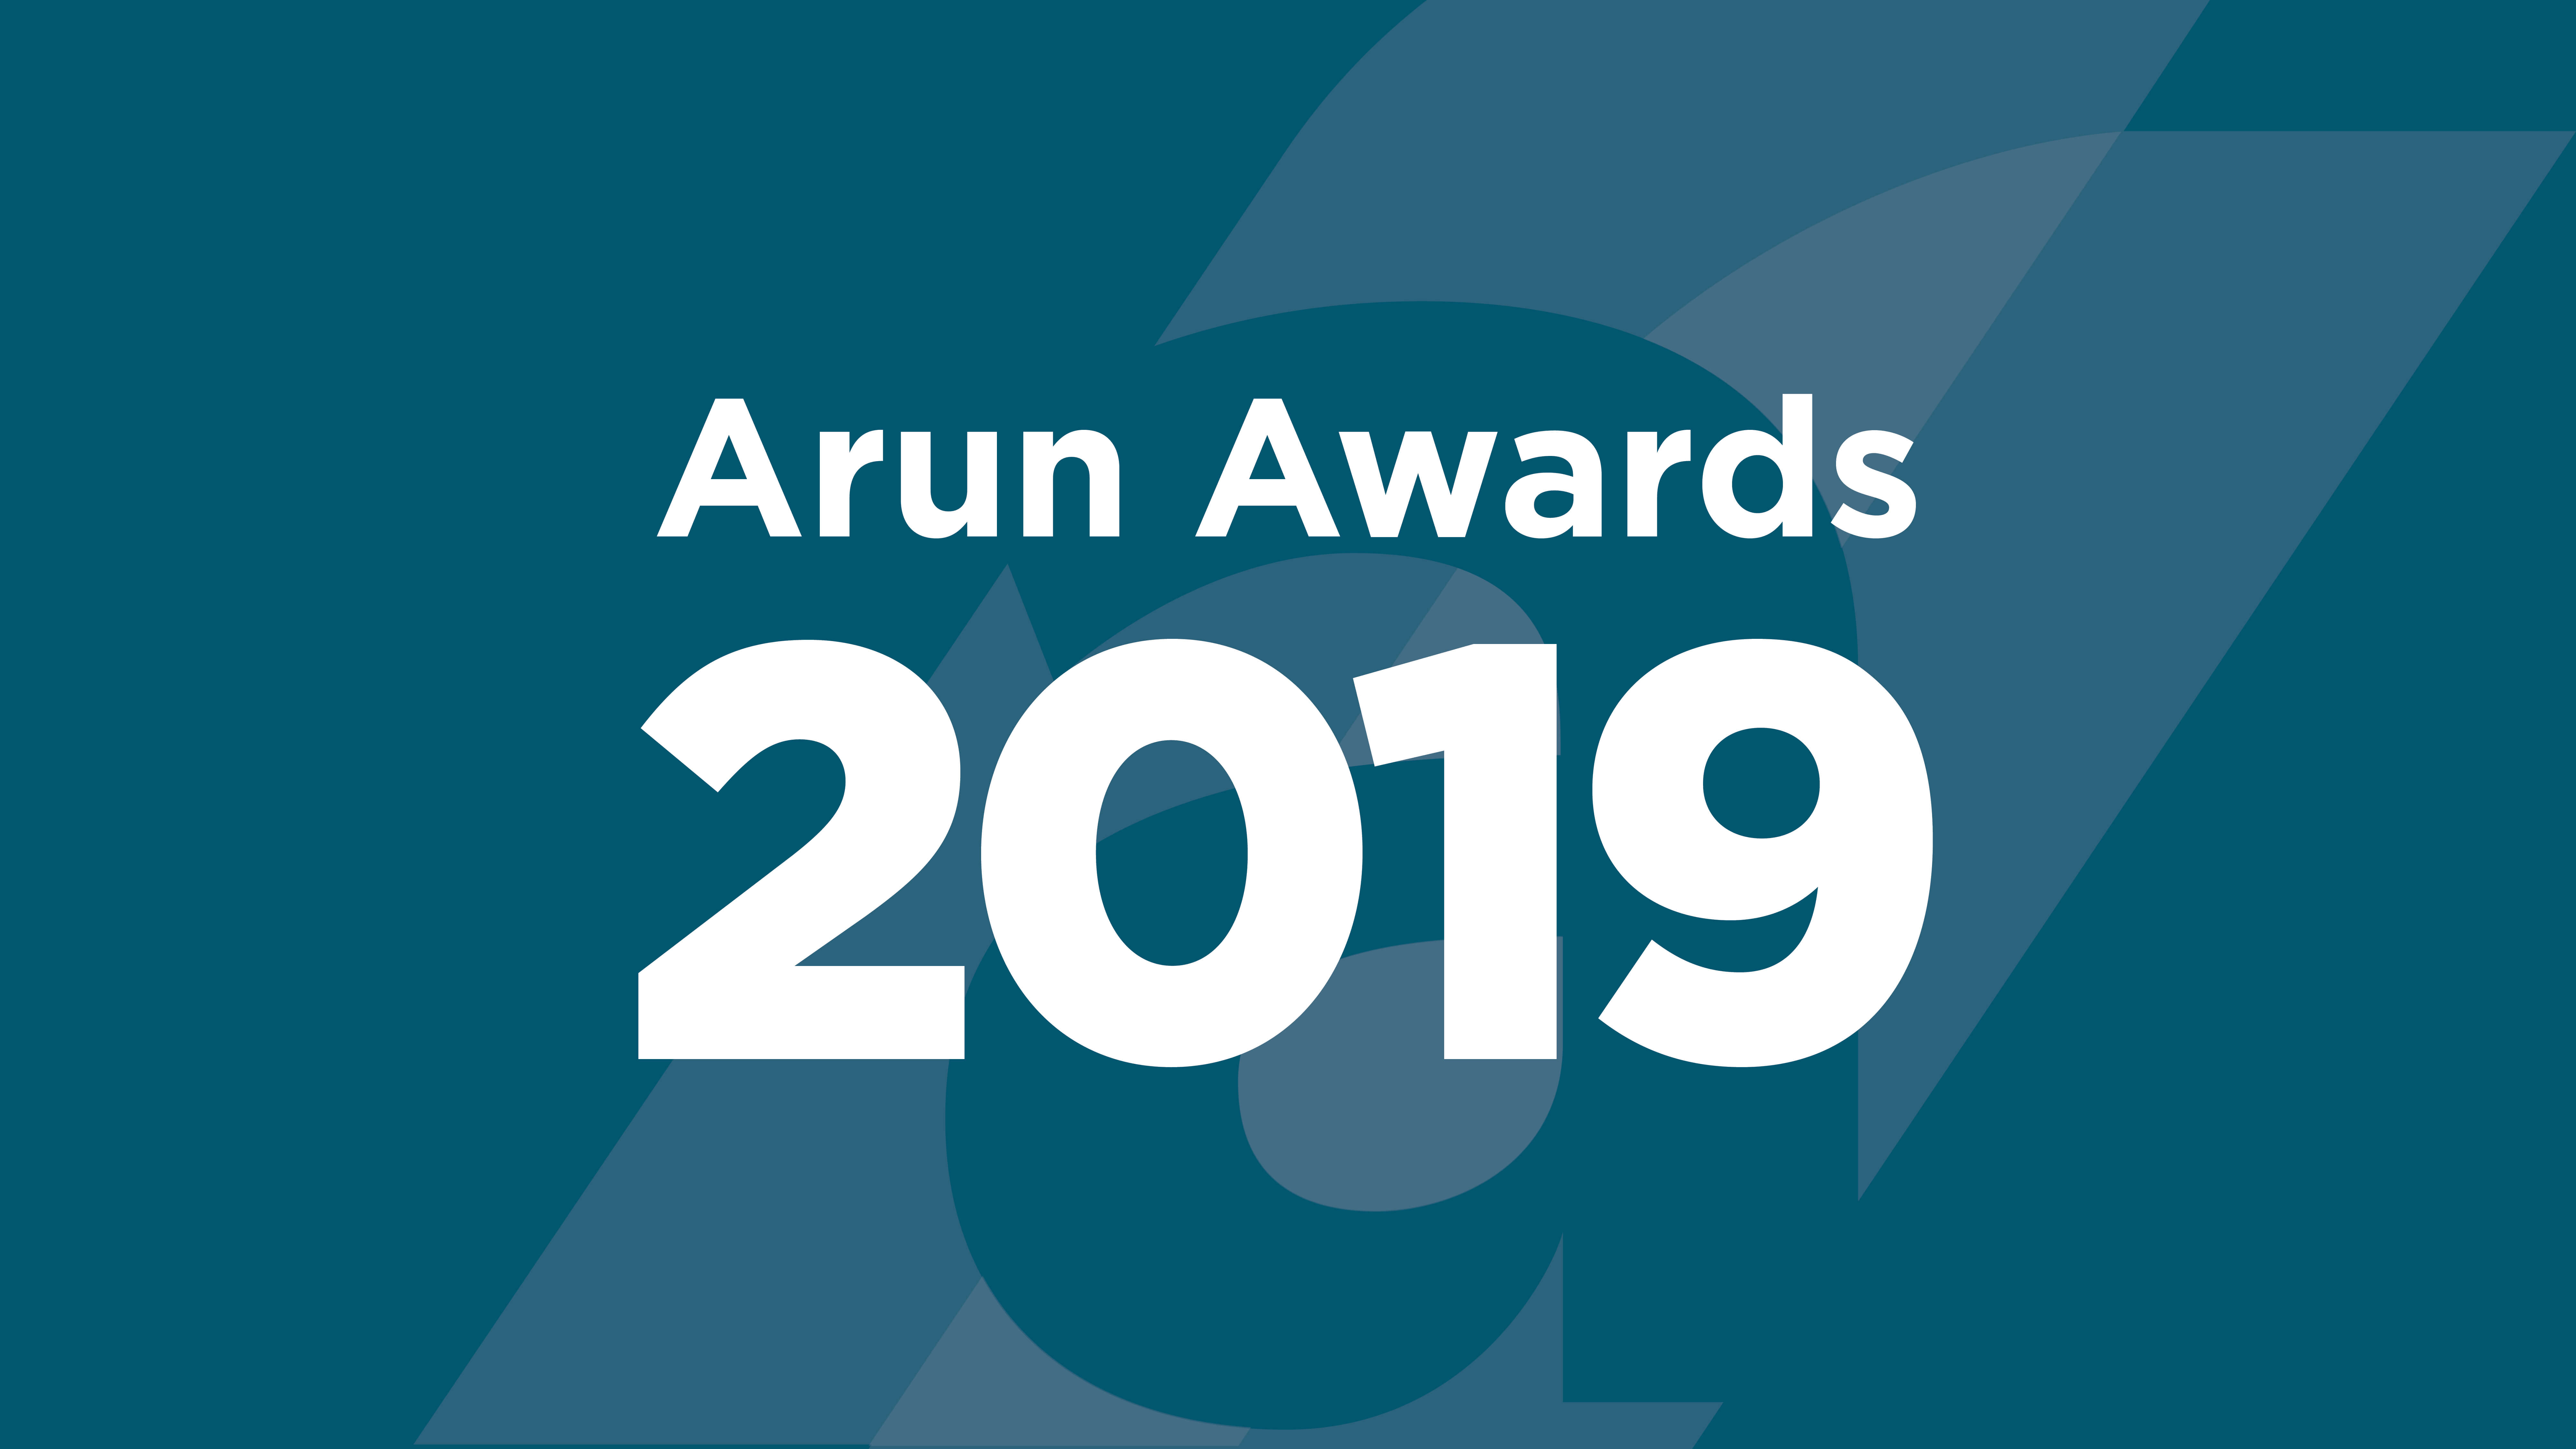 Arun awards 2019